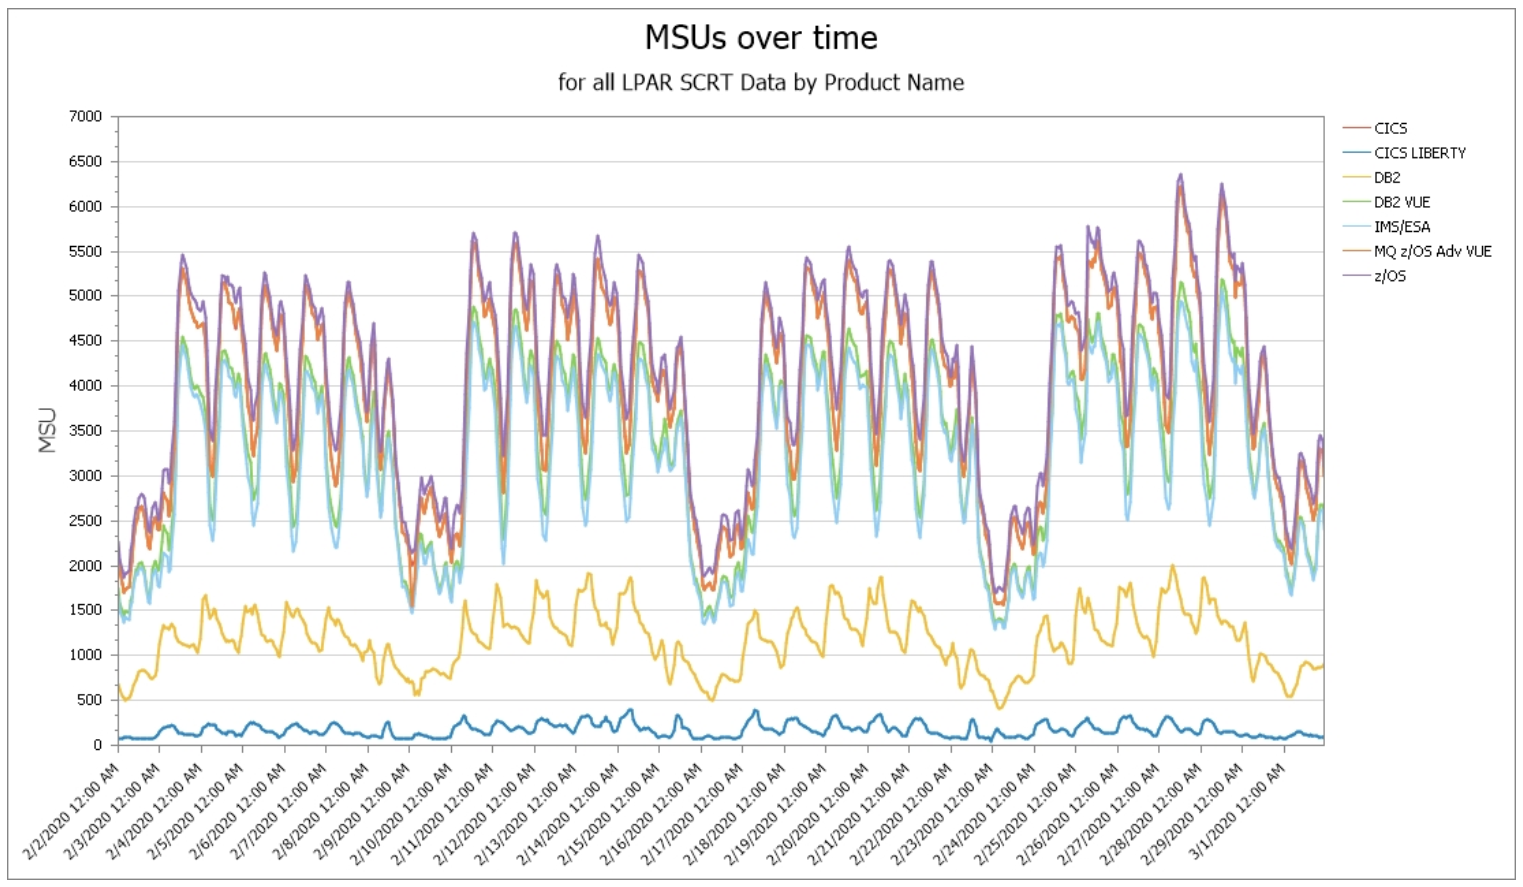 MSUs Over Time